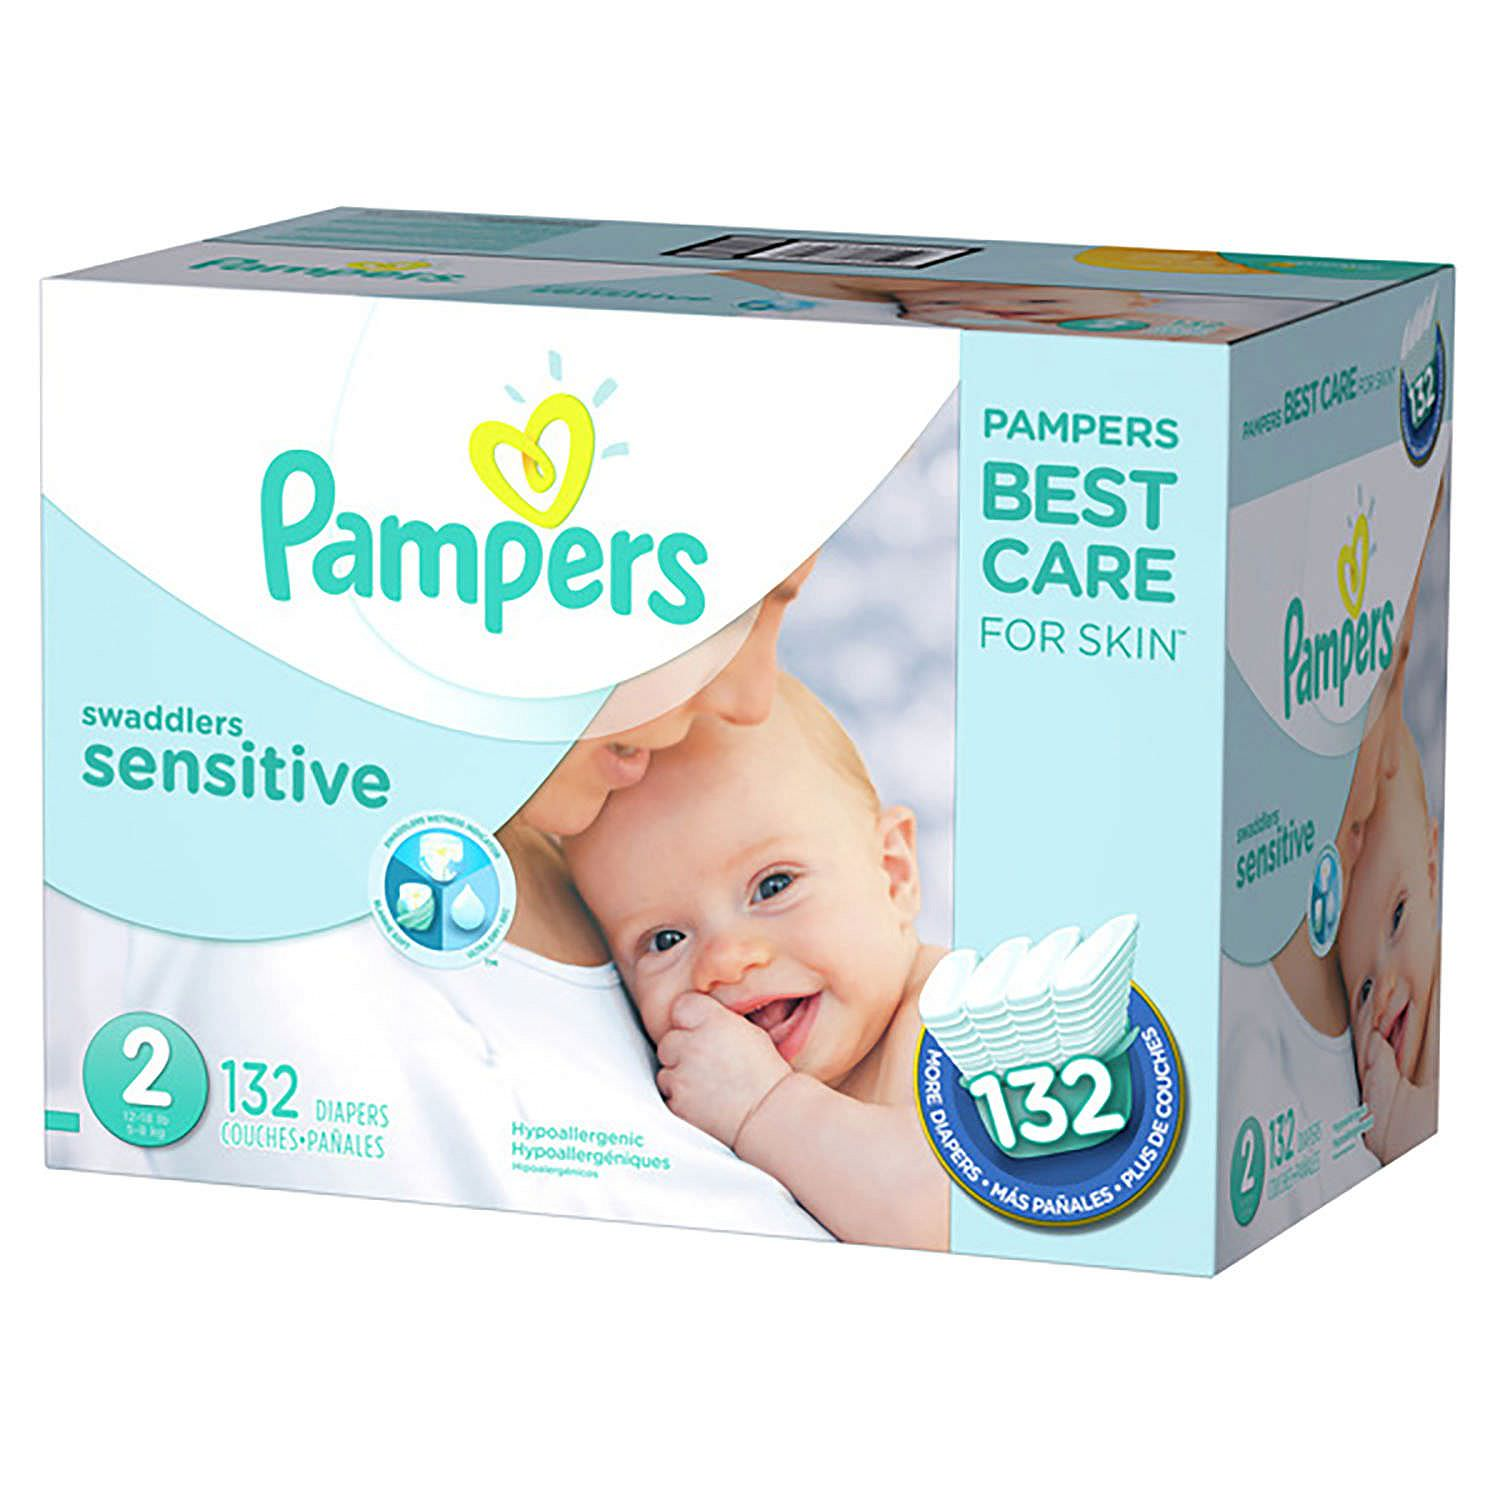 Pampers Swaddlers Sensitive Diapers Size 2 -132 ct. (12-18 lb.)